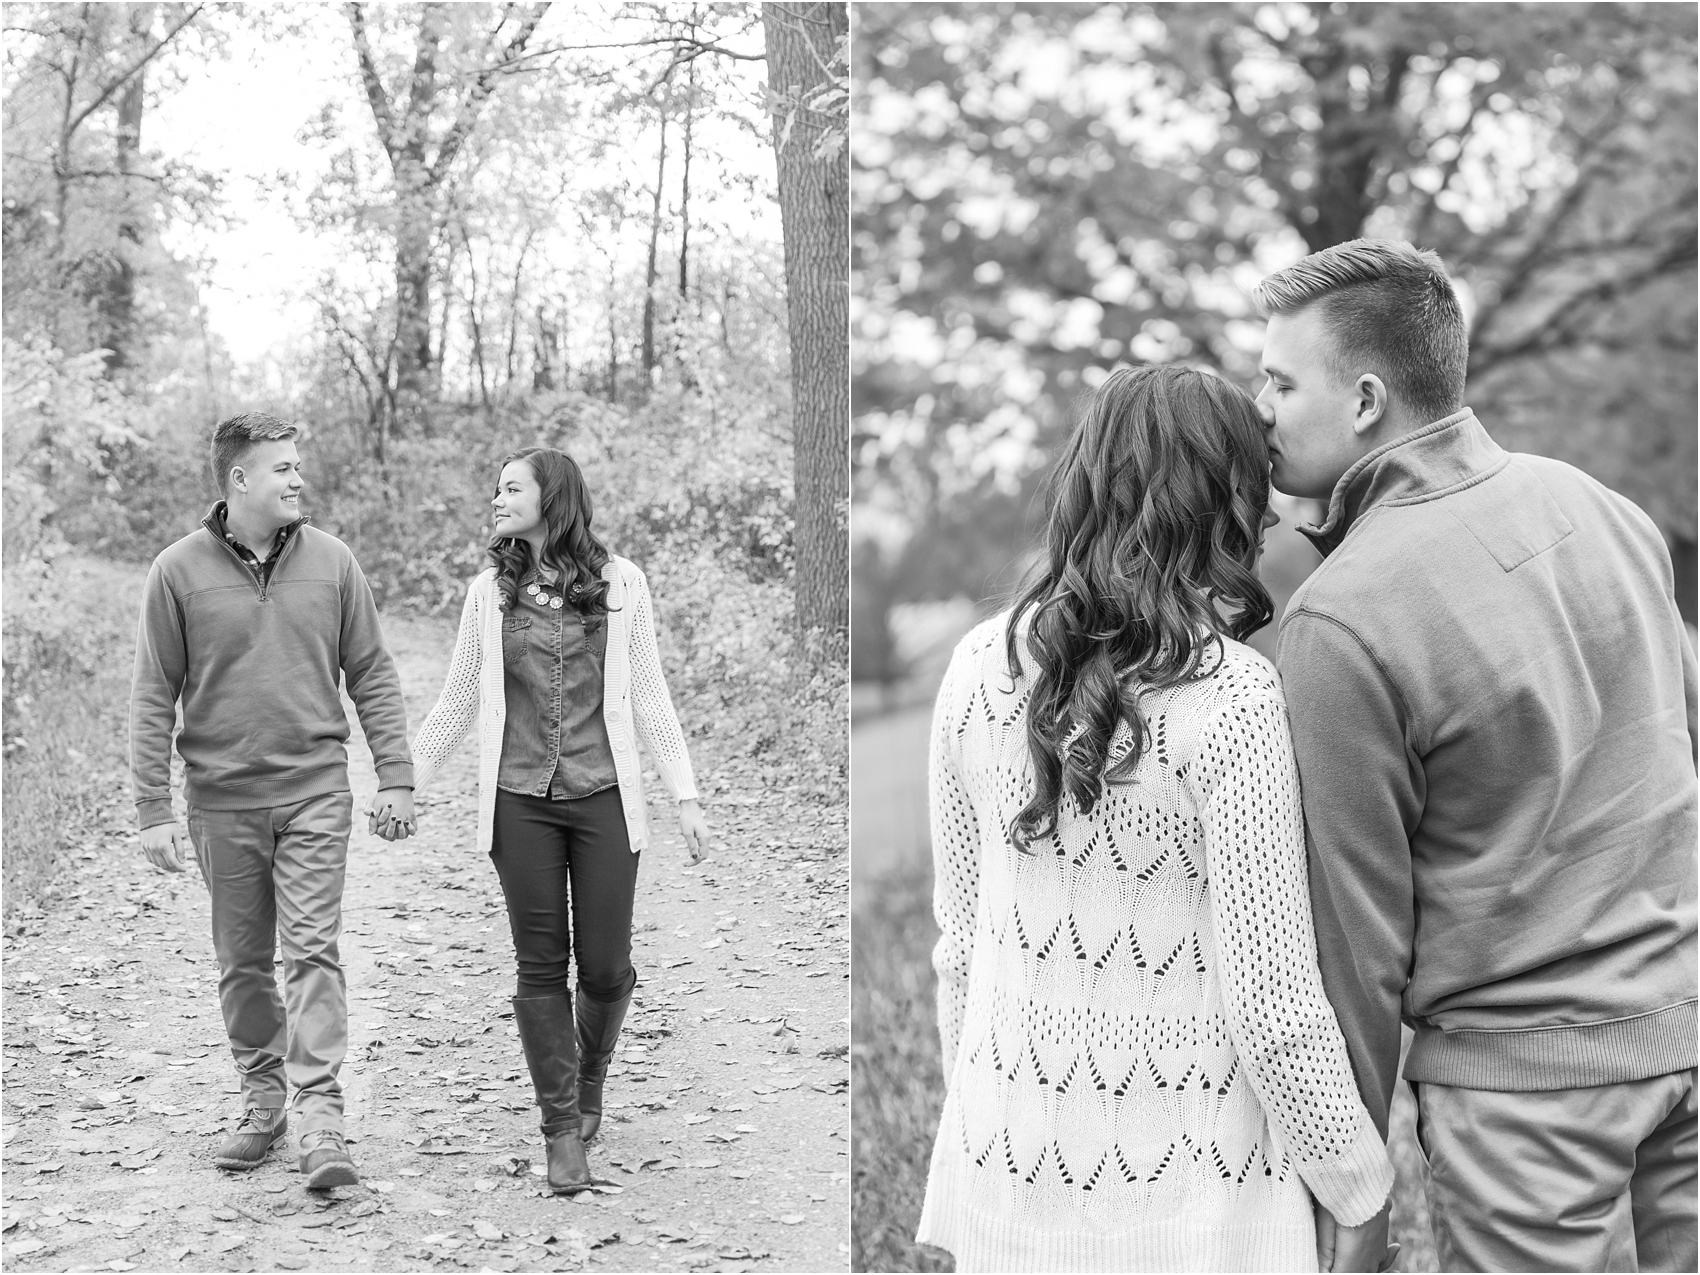 colorful-fall-engagement-photos-at-the-lake-at-huron-meadows-metropark-in-brighton-michigan-by-courtney-carolyn-photography_0015.jpg